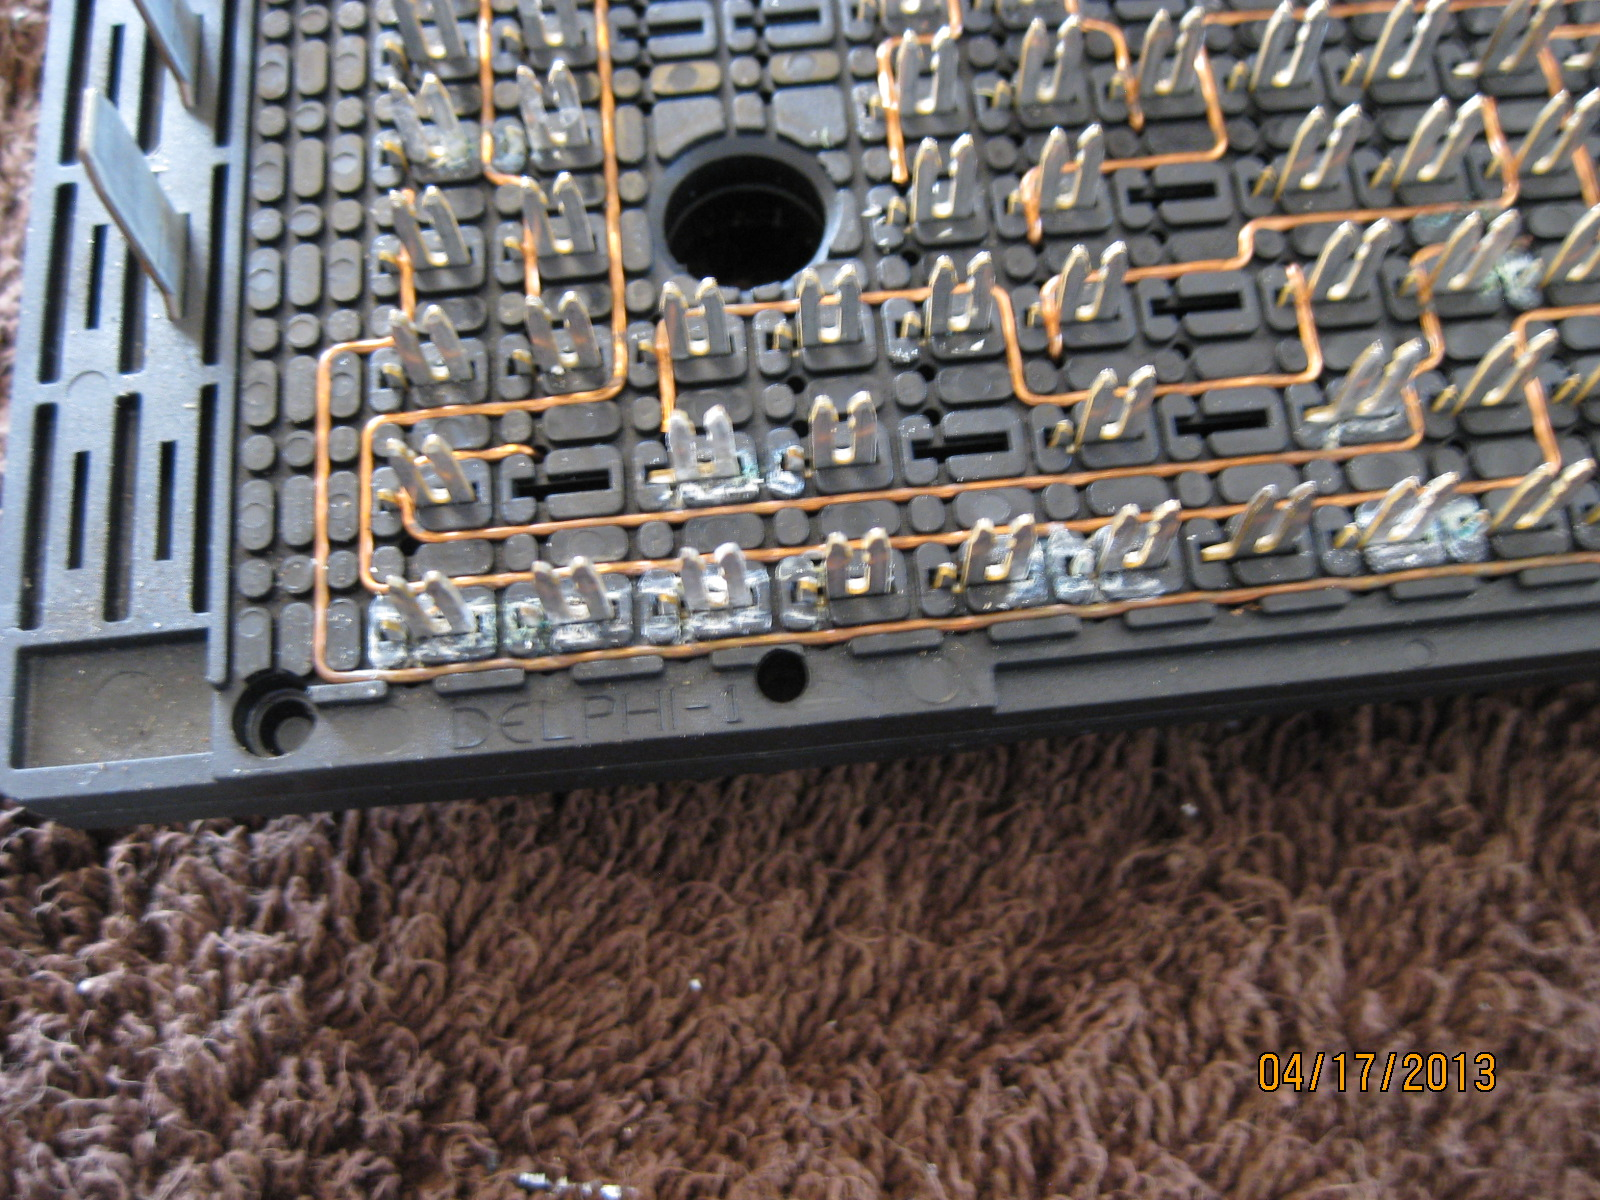 126626d1366556250 main engine fuse box problem pictures img_2737 main engine fuse box problem pictures chevy ssr forum Fuse Box Adapter at reclaimingppi.co